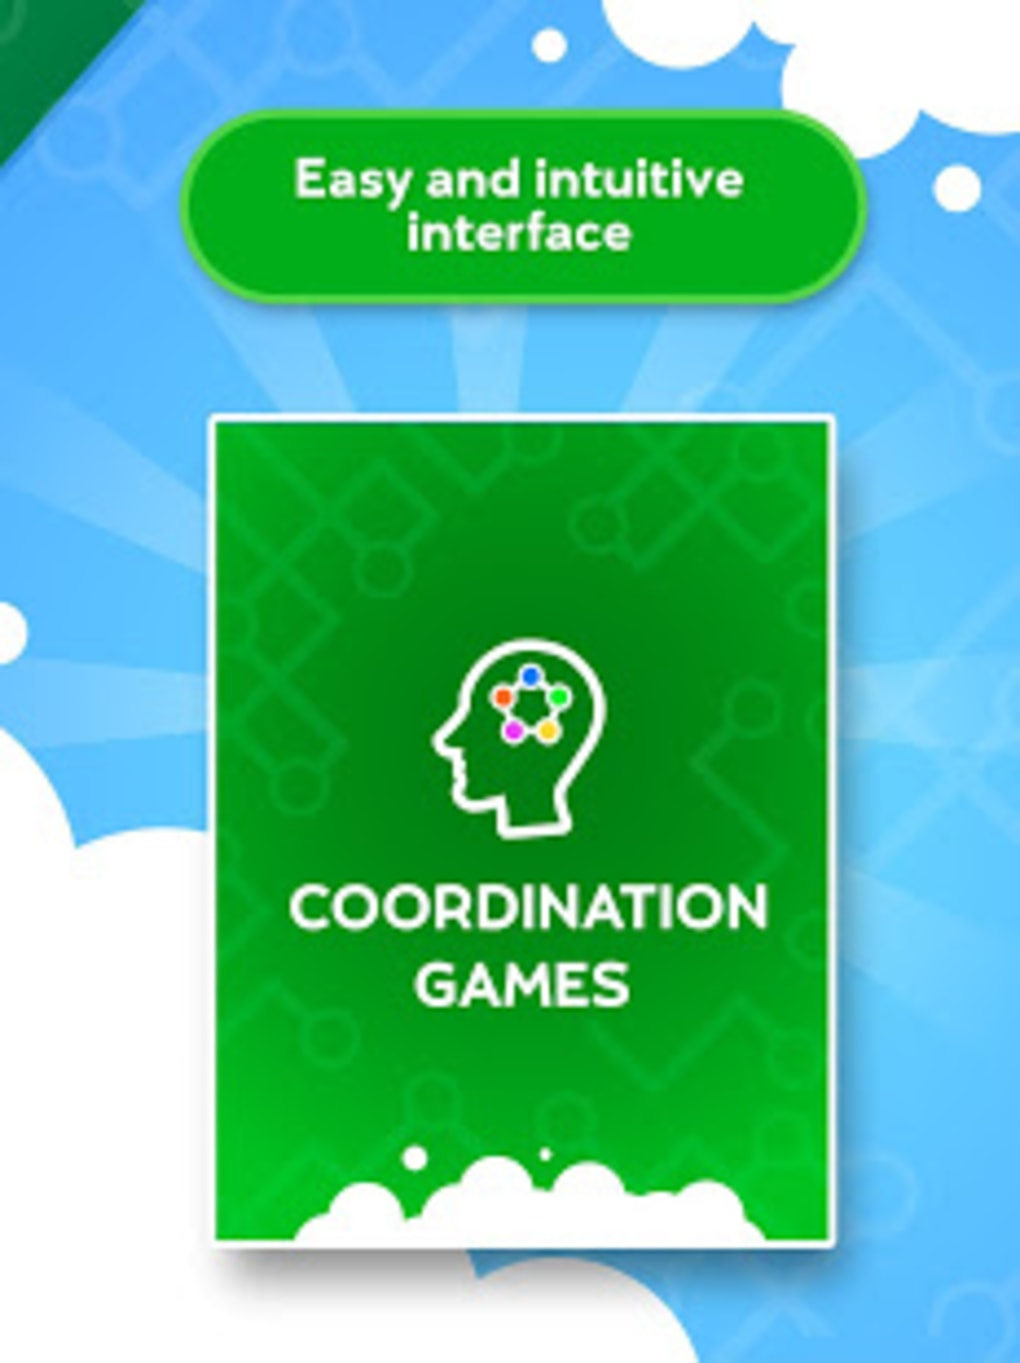 Train your brain - Coordination Games for Android - Download